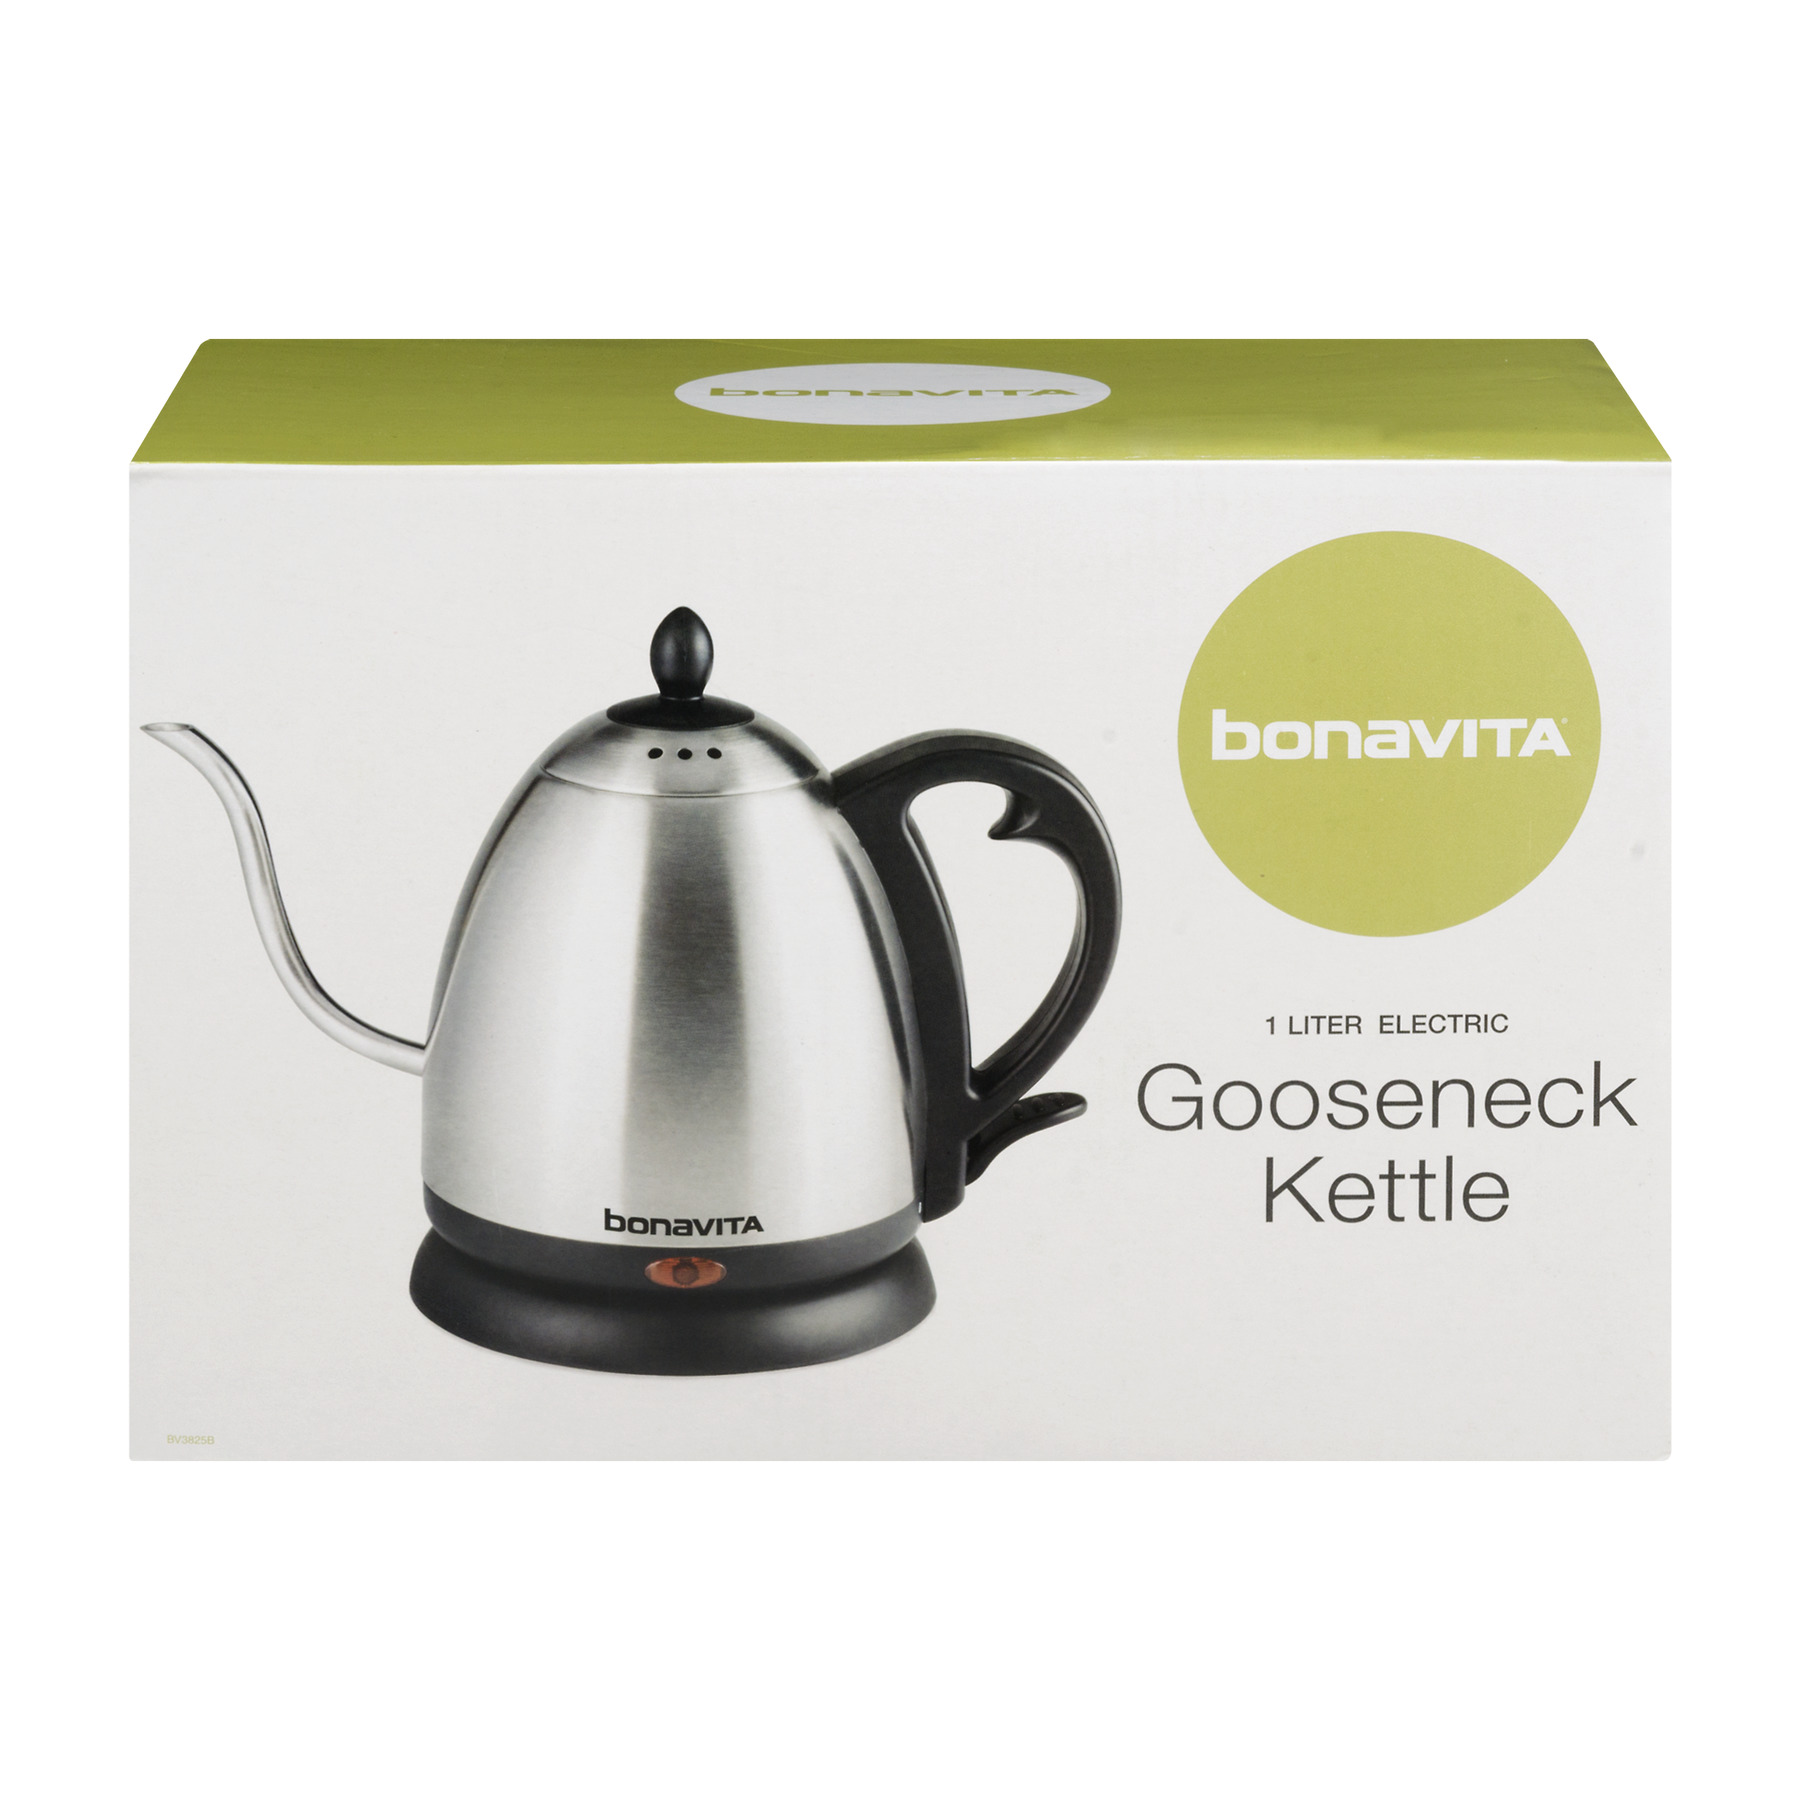 Bonavita 1.0L Gooseneck Electric Kettle